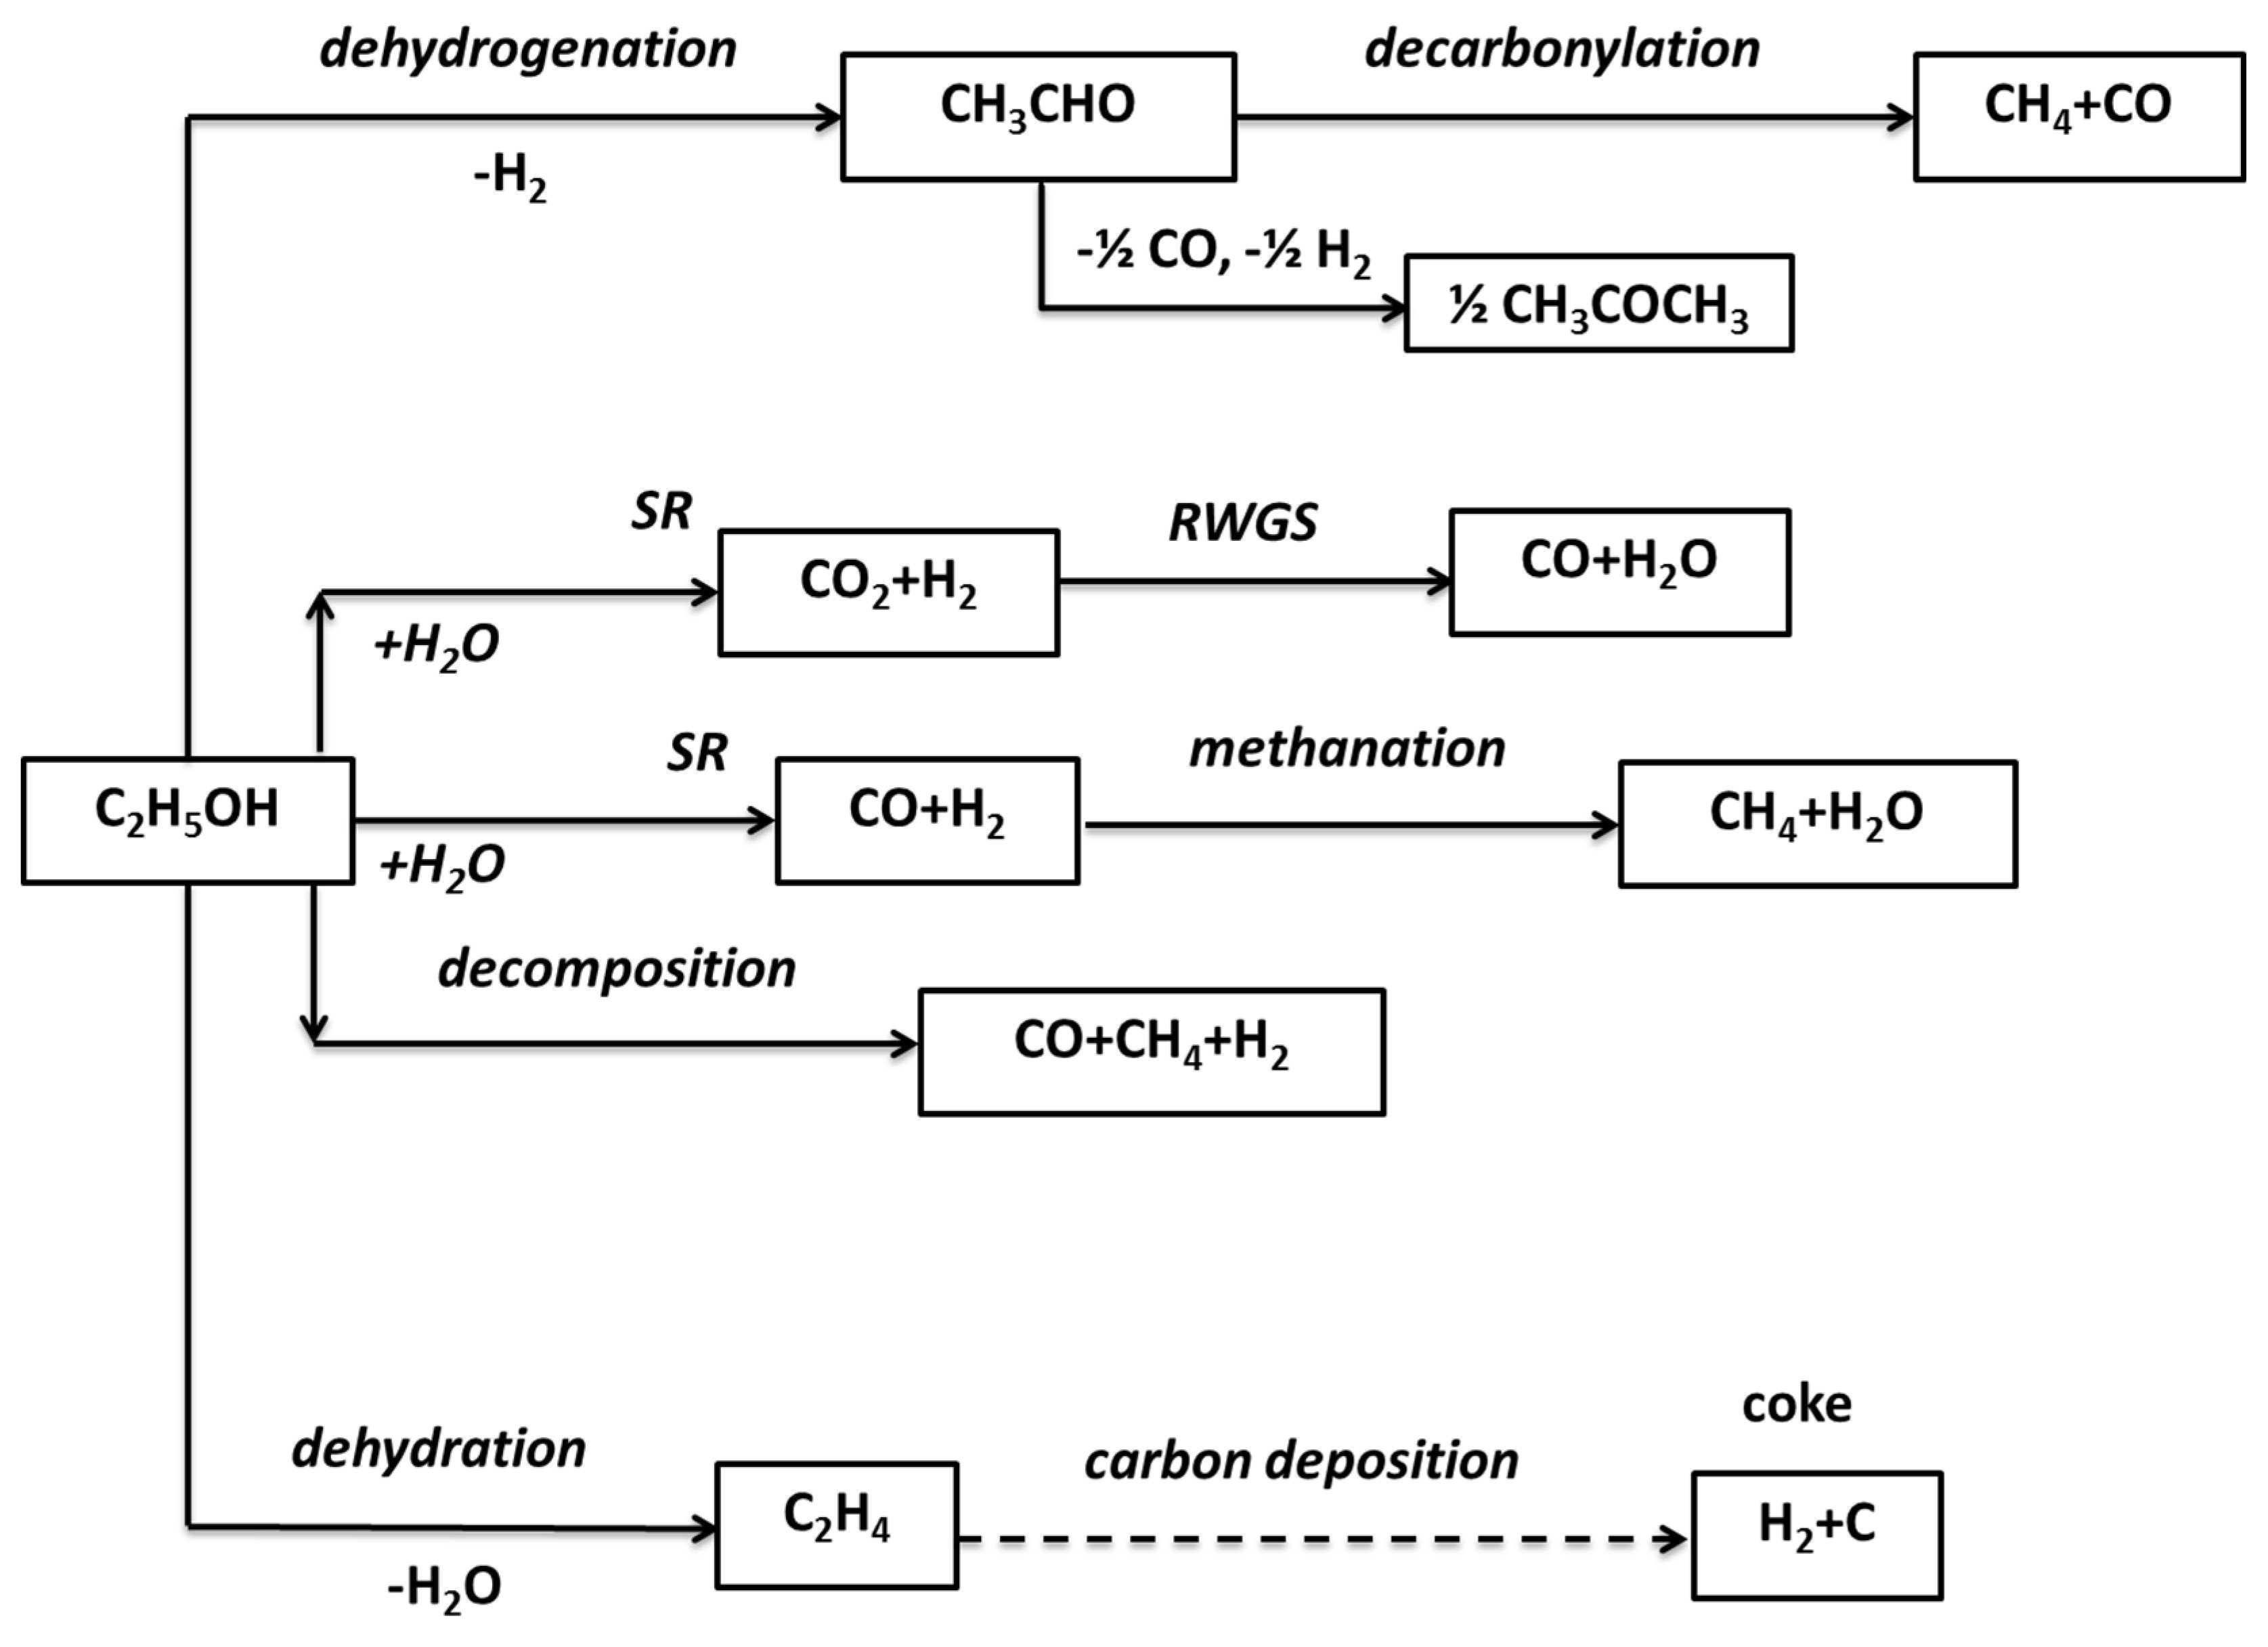 ethanol steam reforming thesis Preparation, characterization, and evaluation of mg-al mixed oxide supported nickel catalysts for the steam reforming of ethanol by luke james ivor coleman.